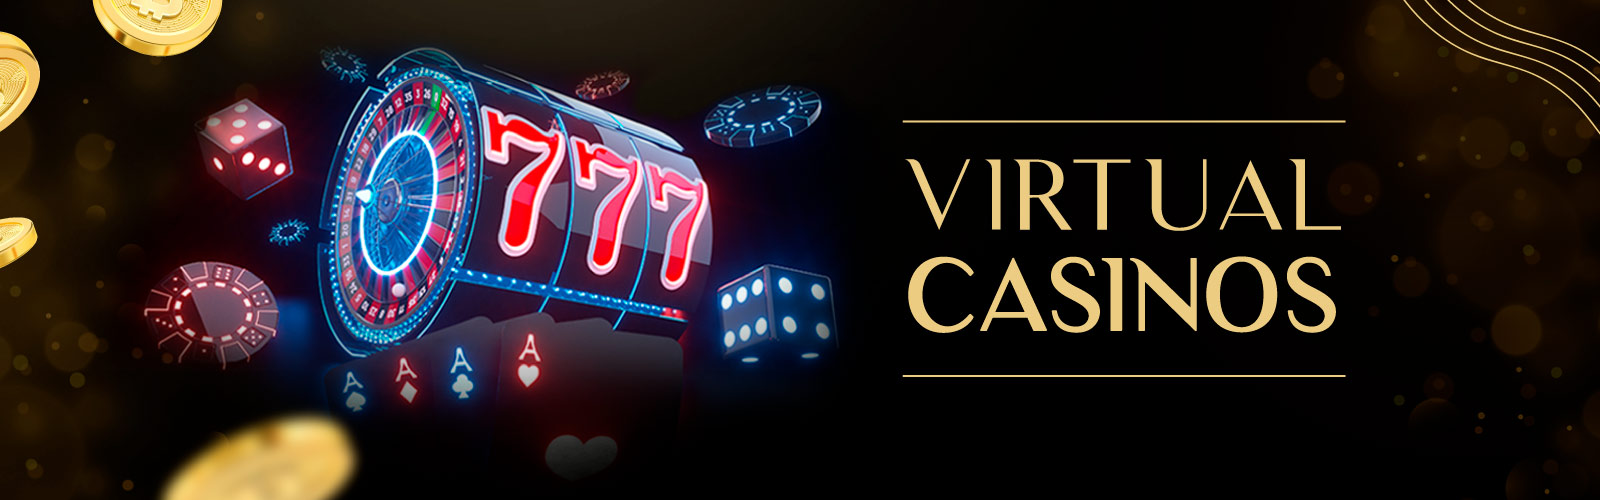 Virtual Casinos Online